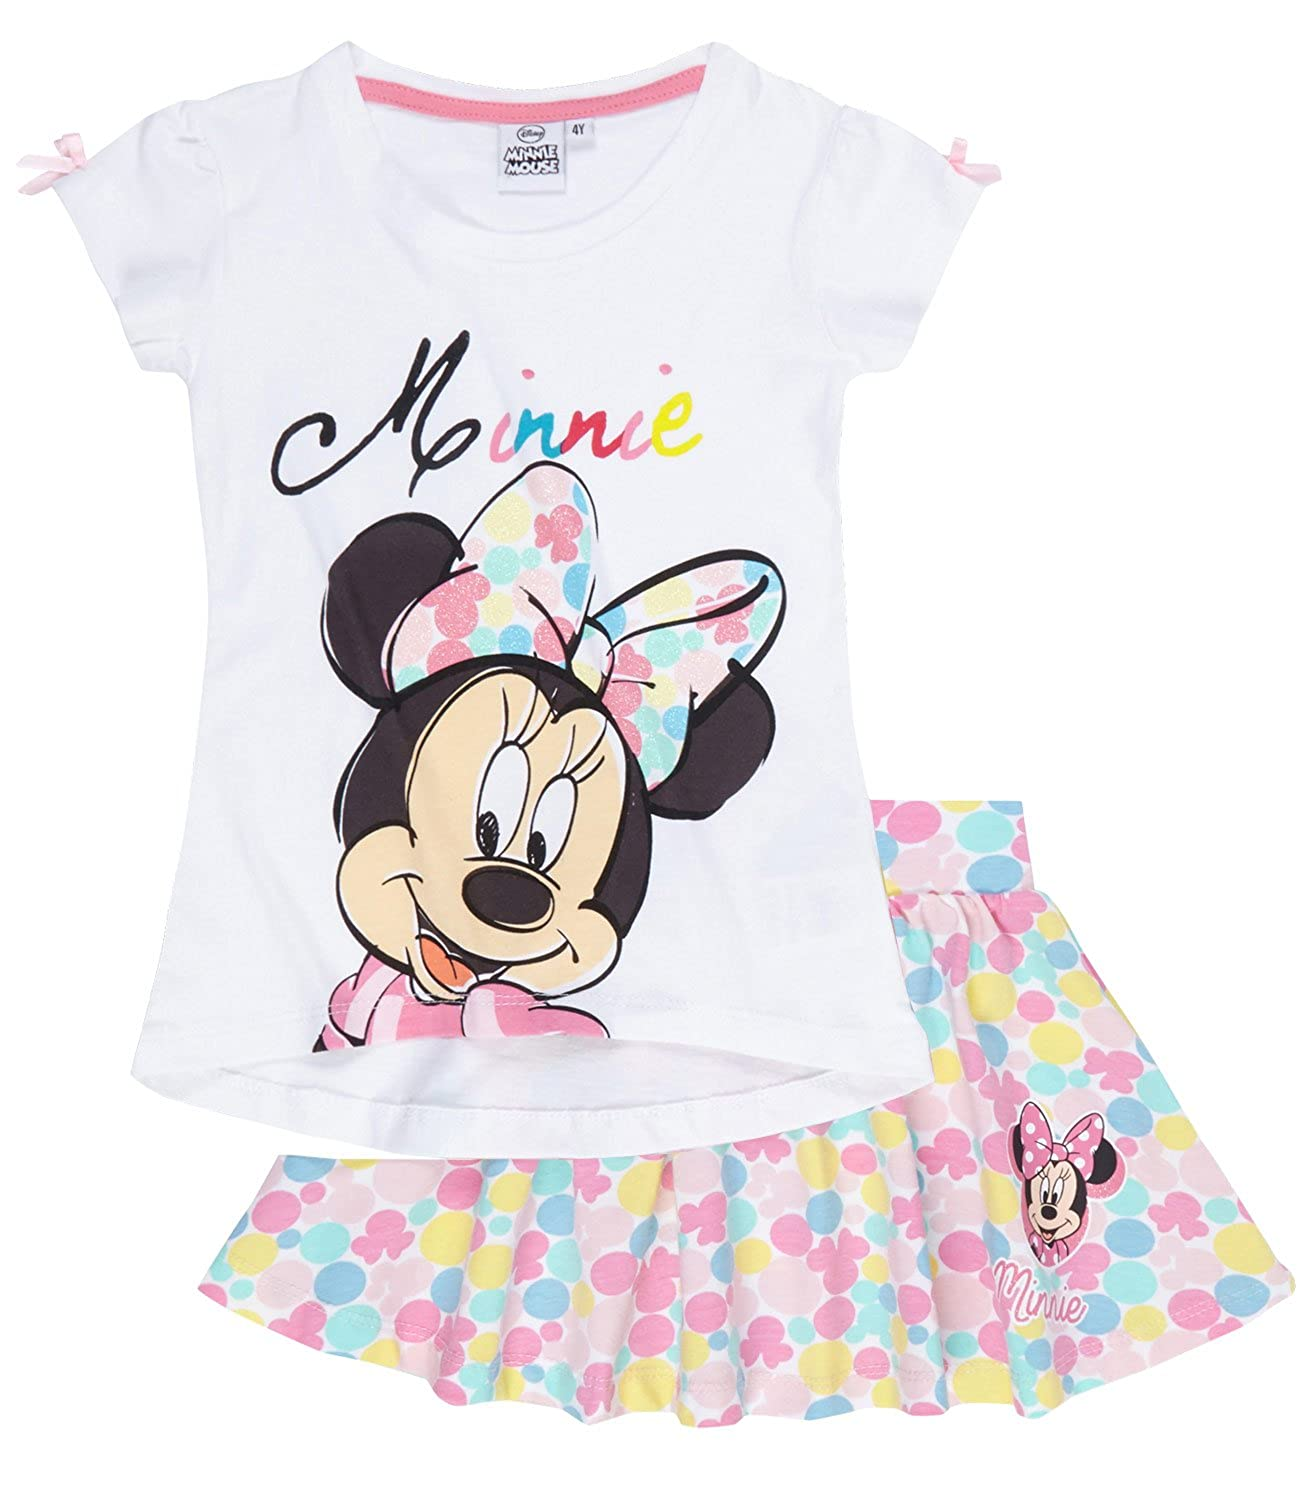 Disney Minnie Girls T-shirt and skirt 2016 Collection - white